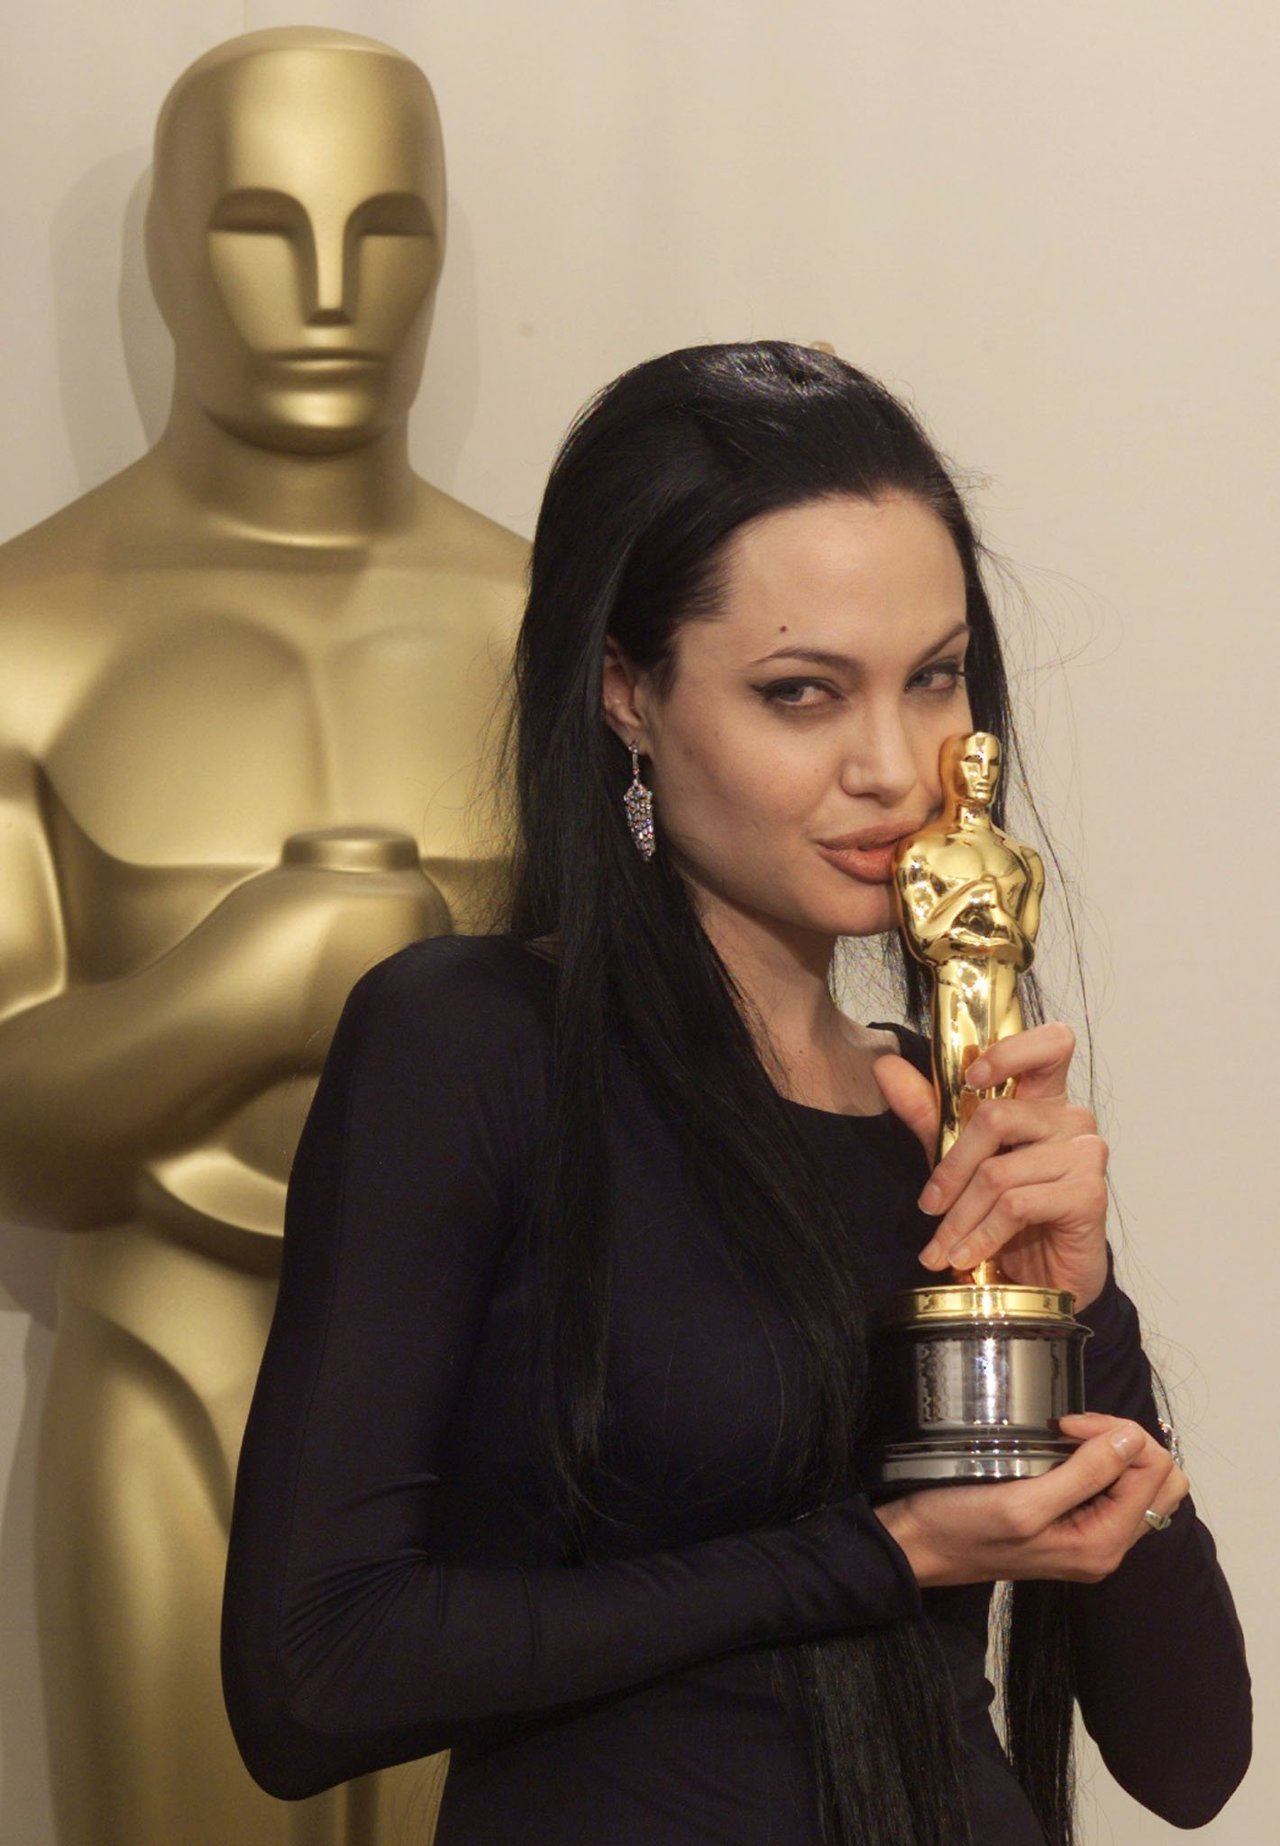 Angelina Jolie kissing her oscar for best supporting actress for her role in Girl, Interrupted at the 2000 Academy Awards